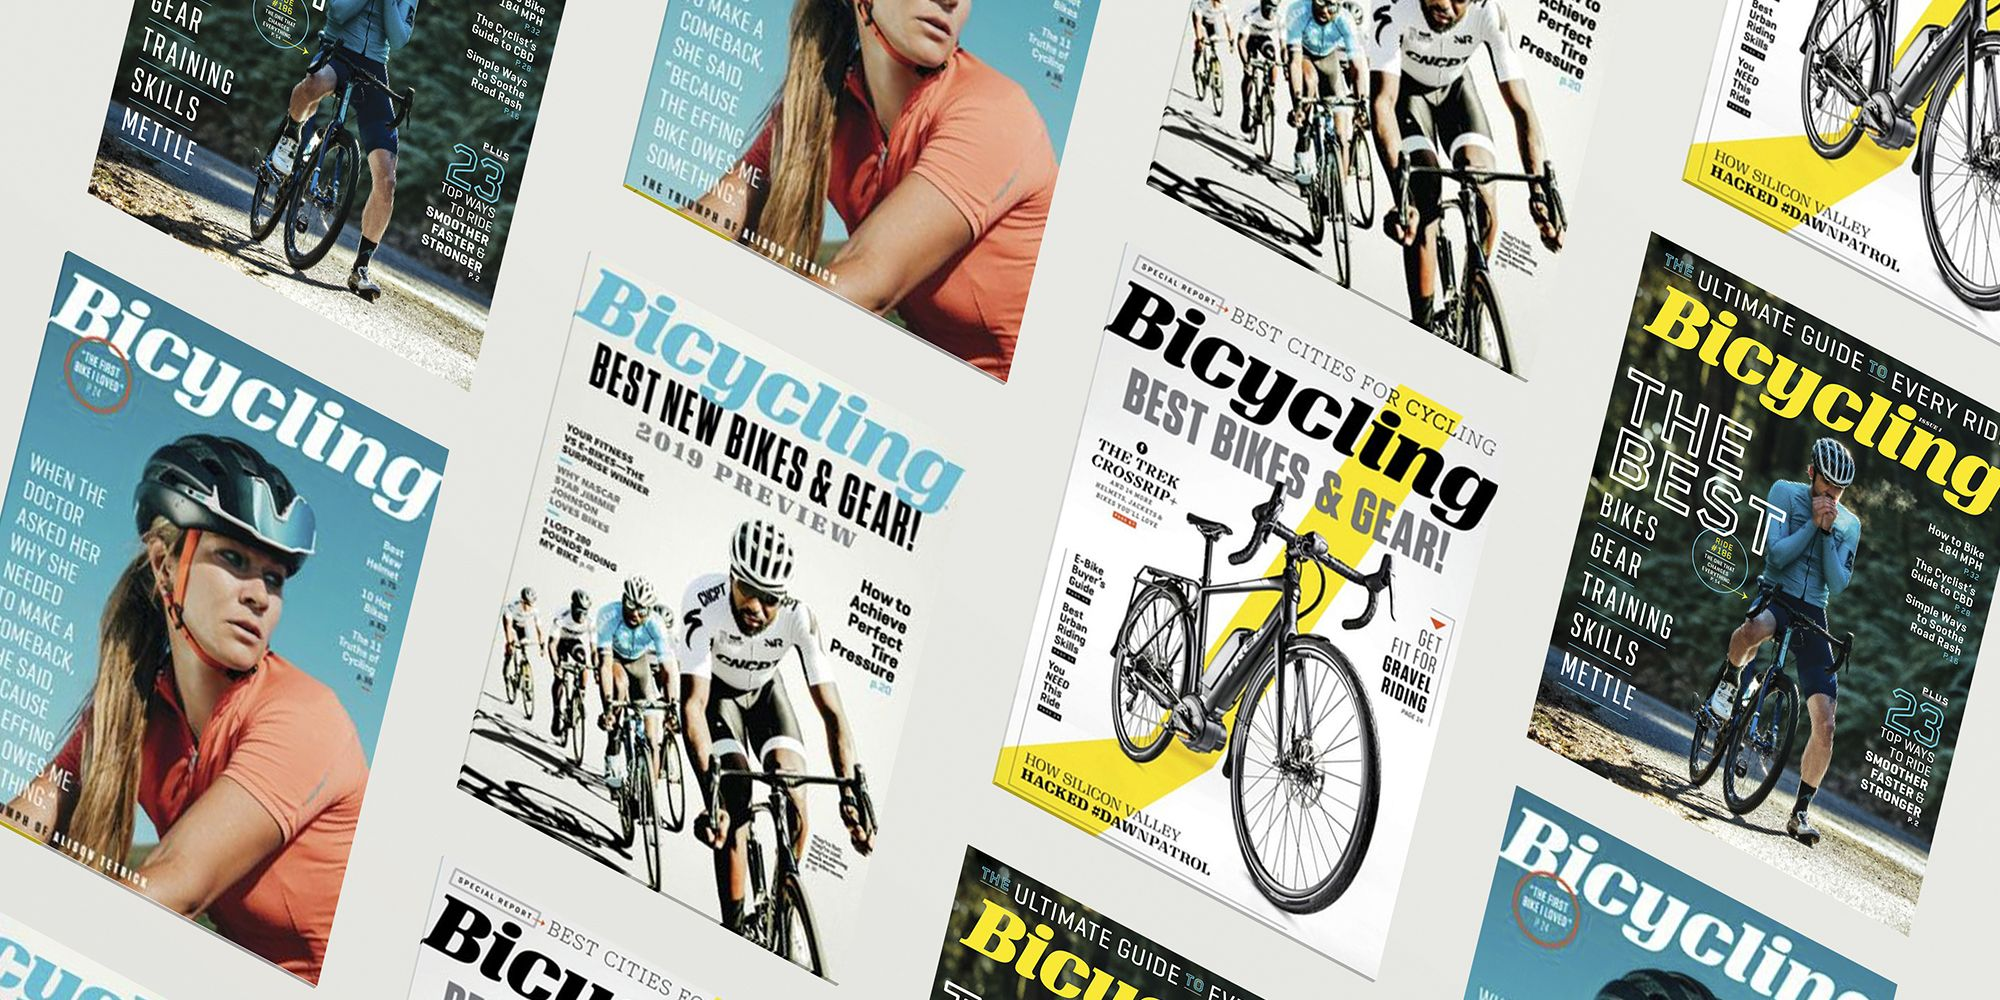 Bicycling Magazine Customer Service - How to Subscribe and Manage